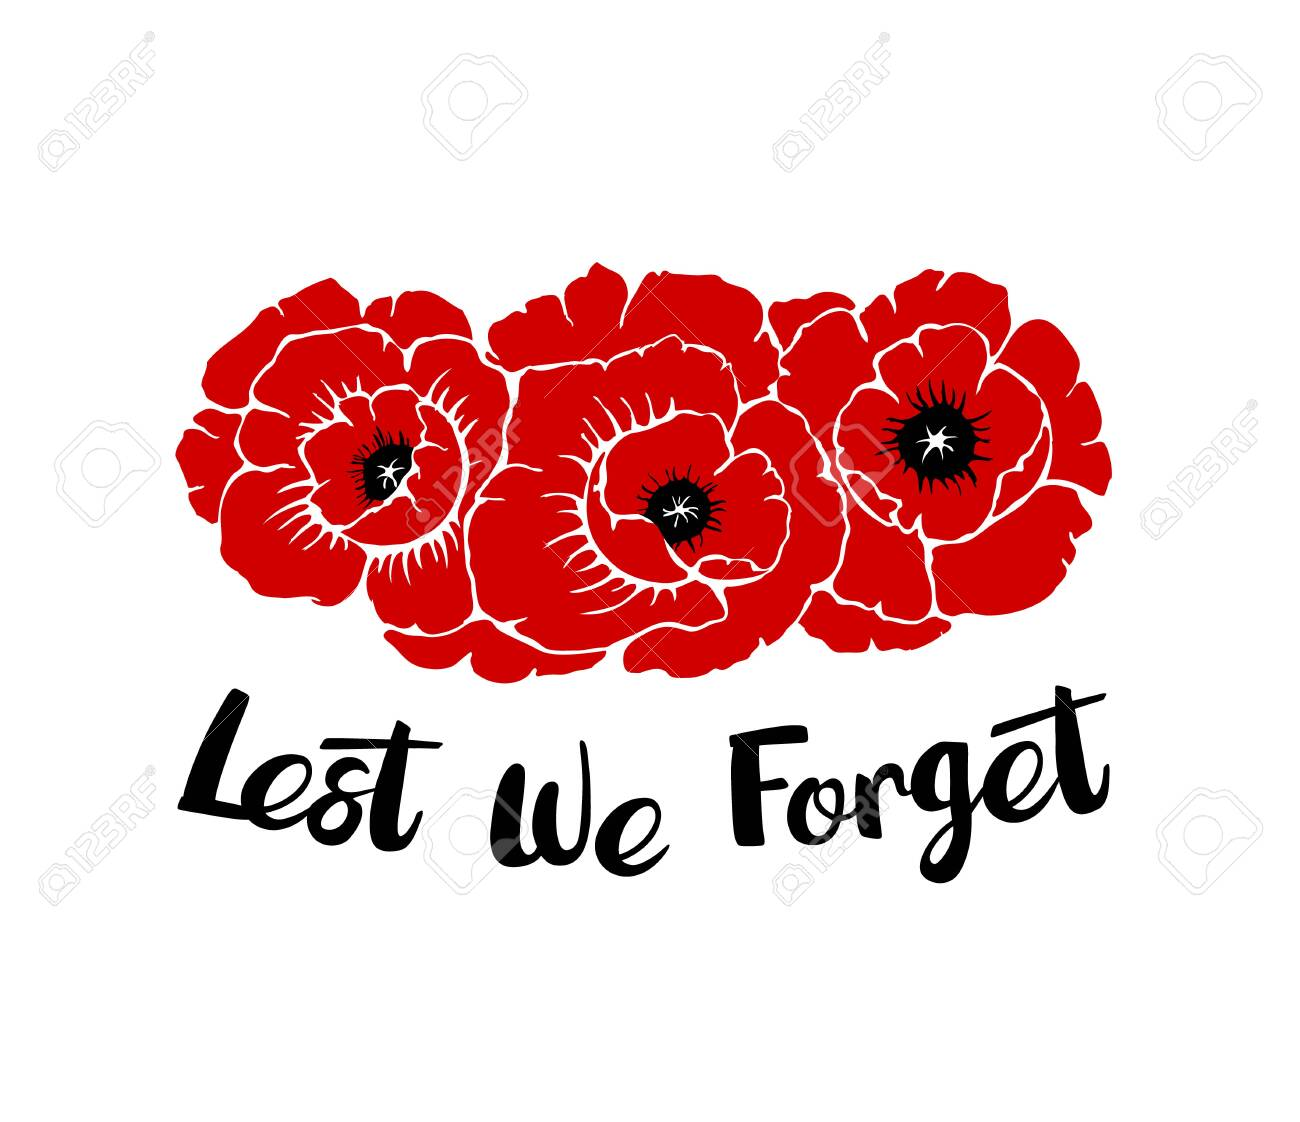 Silhouettes of three poppies flowers isolated on a white background with phrase Lest we forget. Temaplate for Anzac or Rememberance day. Vector illustration drawing in hand drawn style. - 144683184